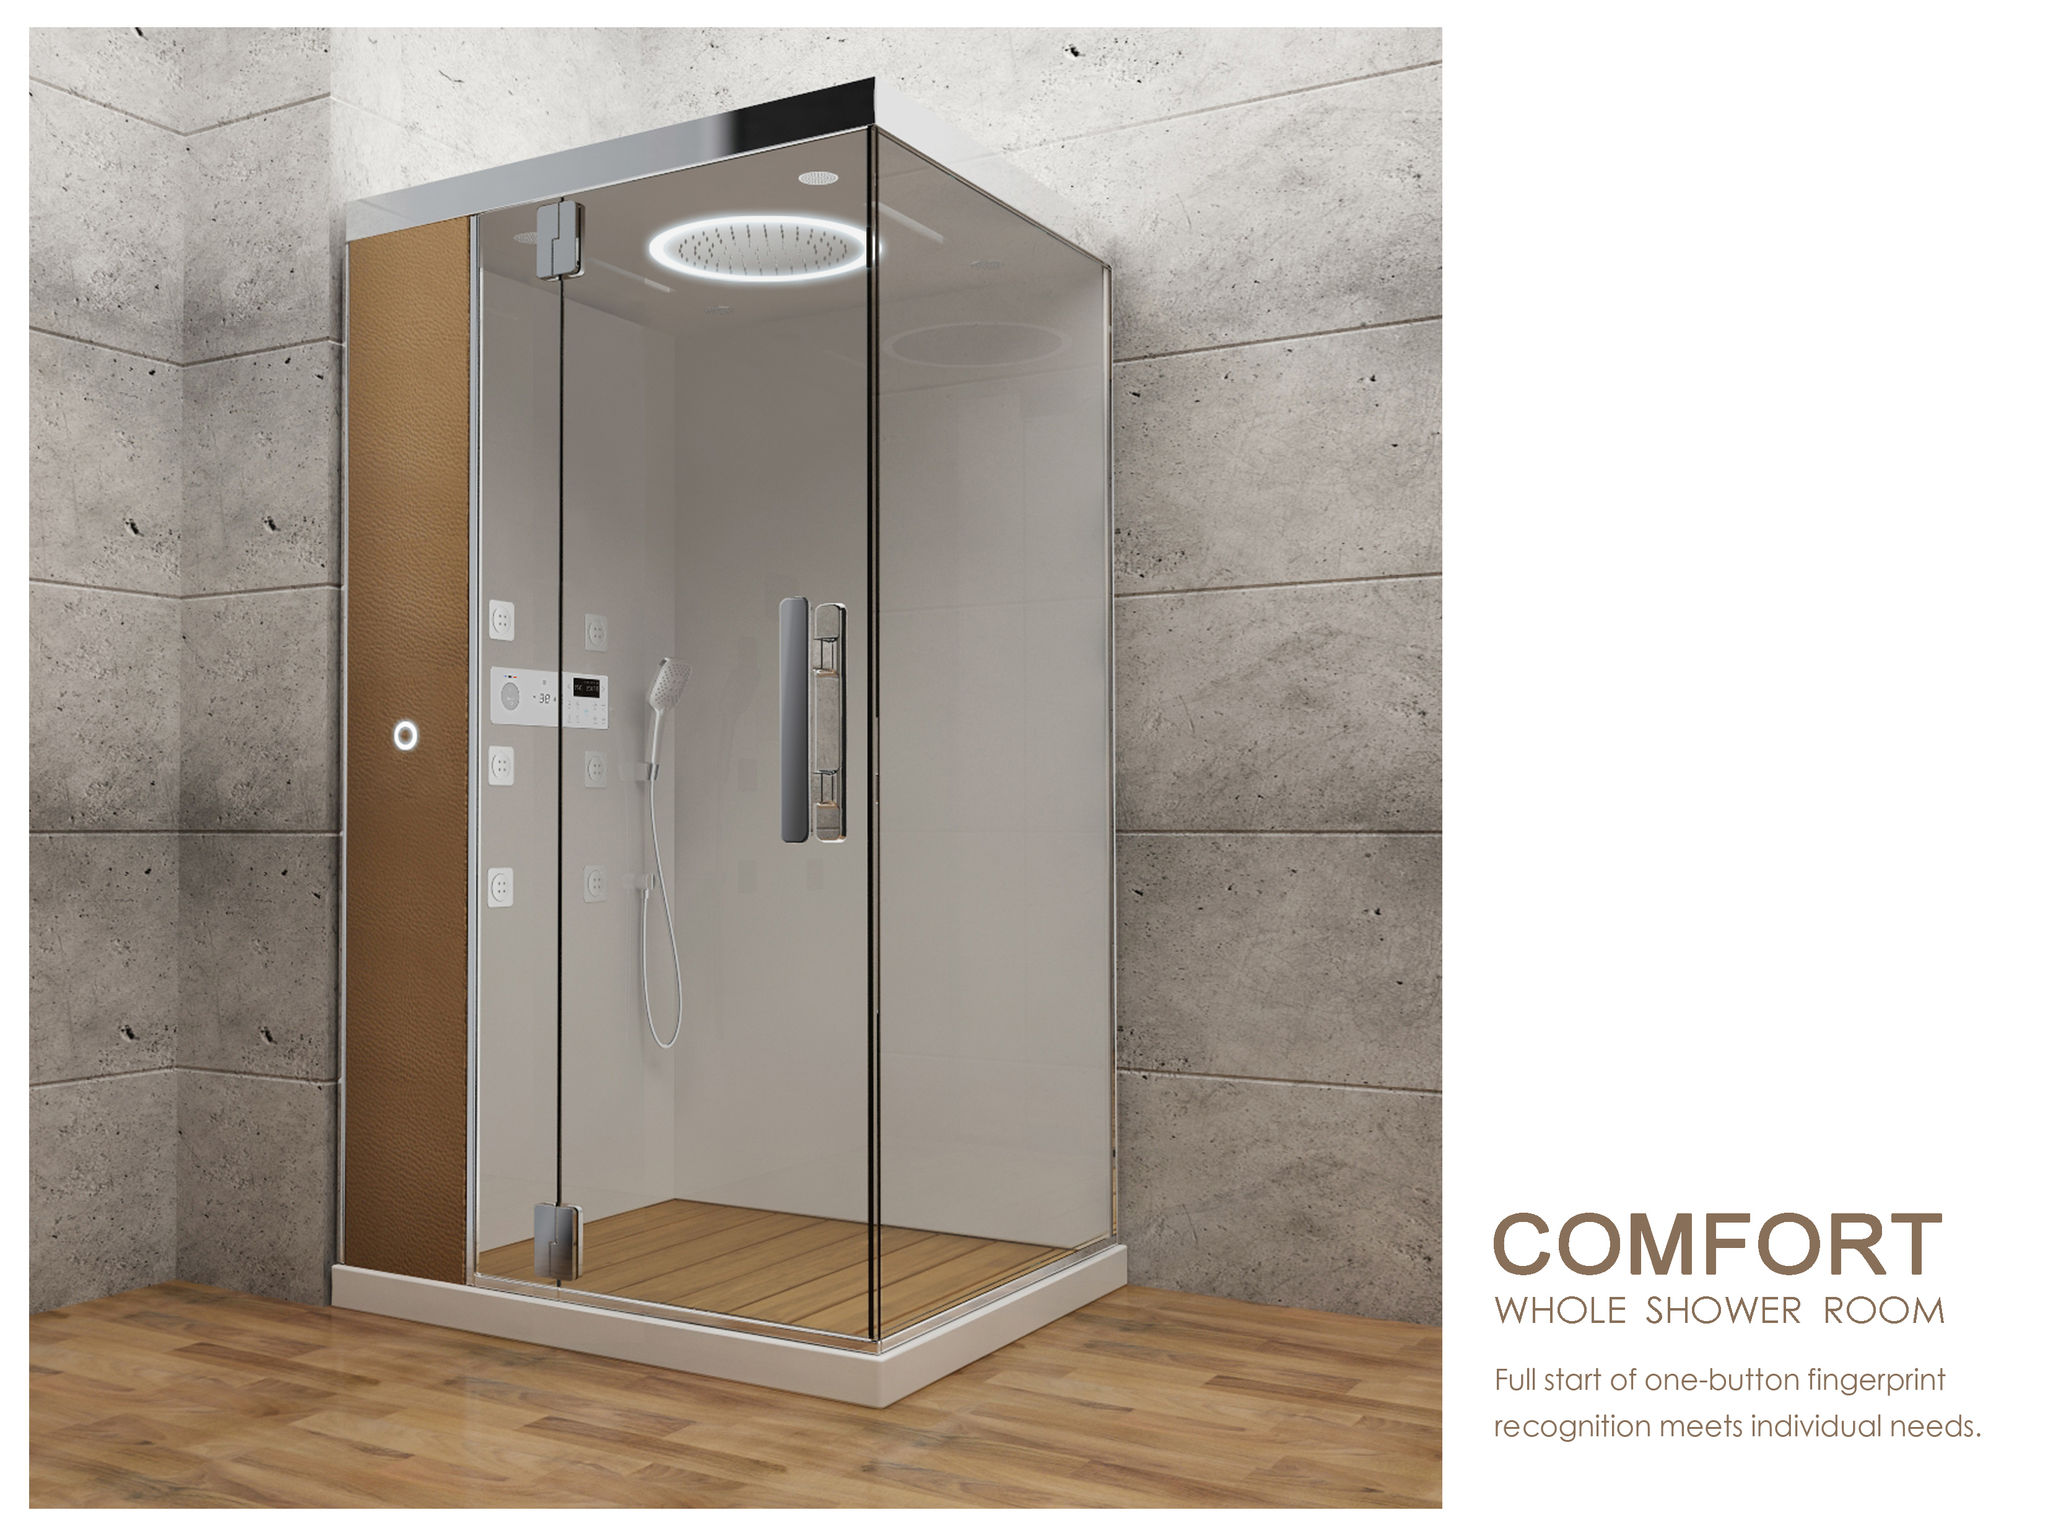 comfort - Entry - iF WORLD DESIGN GUIDE